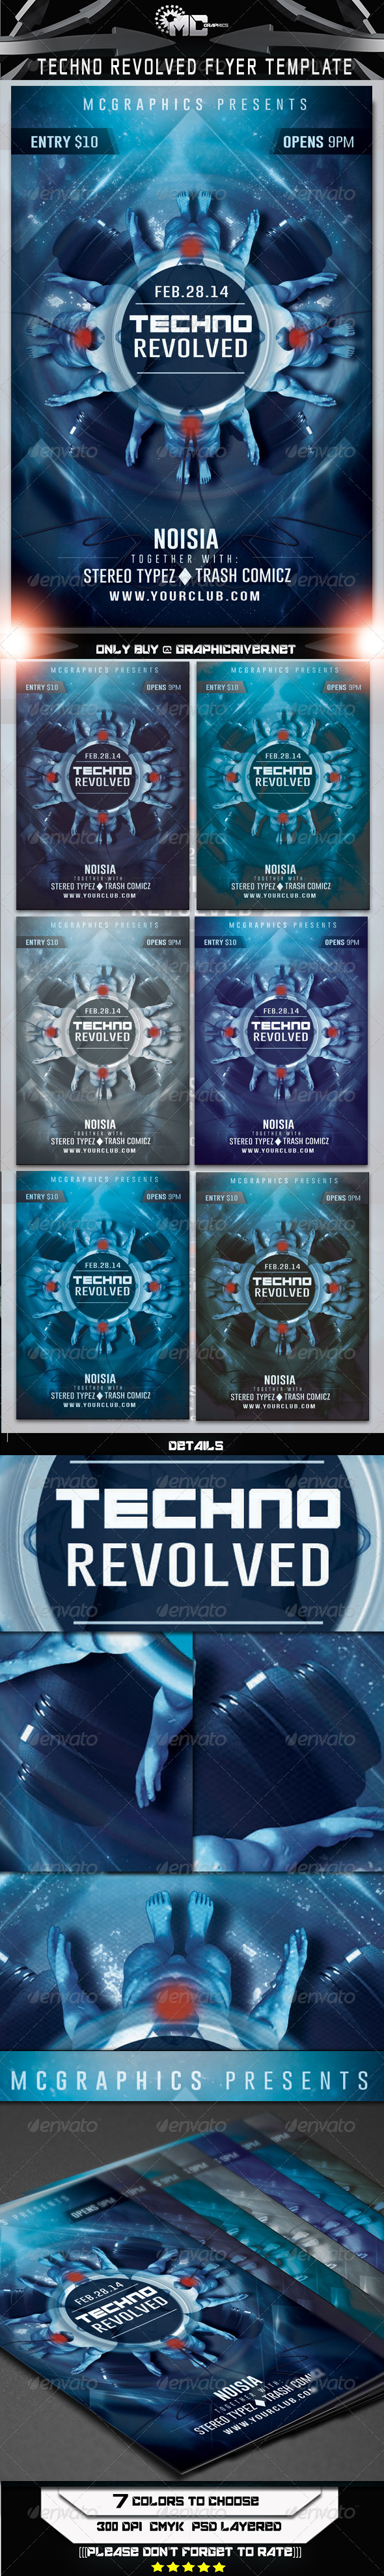 Techno Revolved Flyer Template - Events Flyers